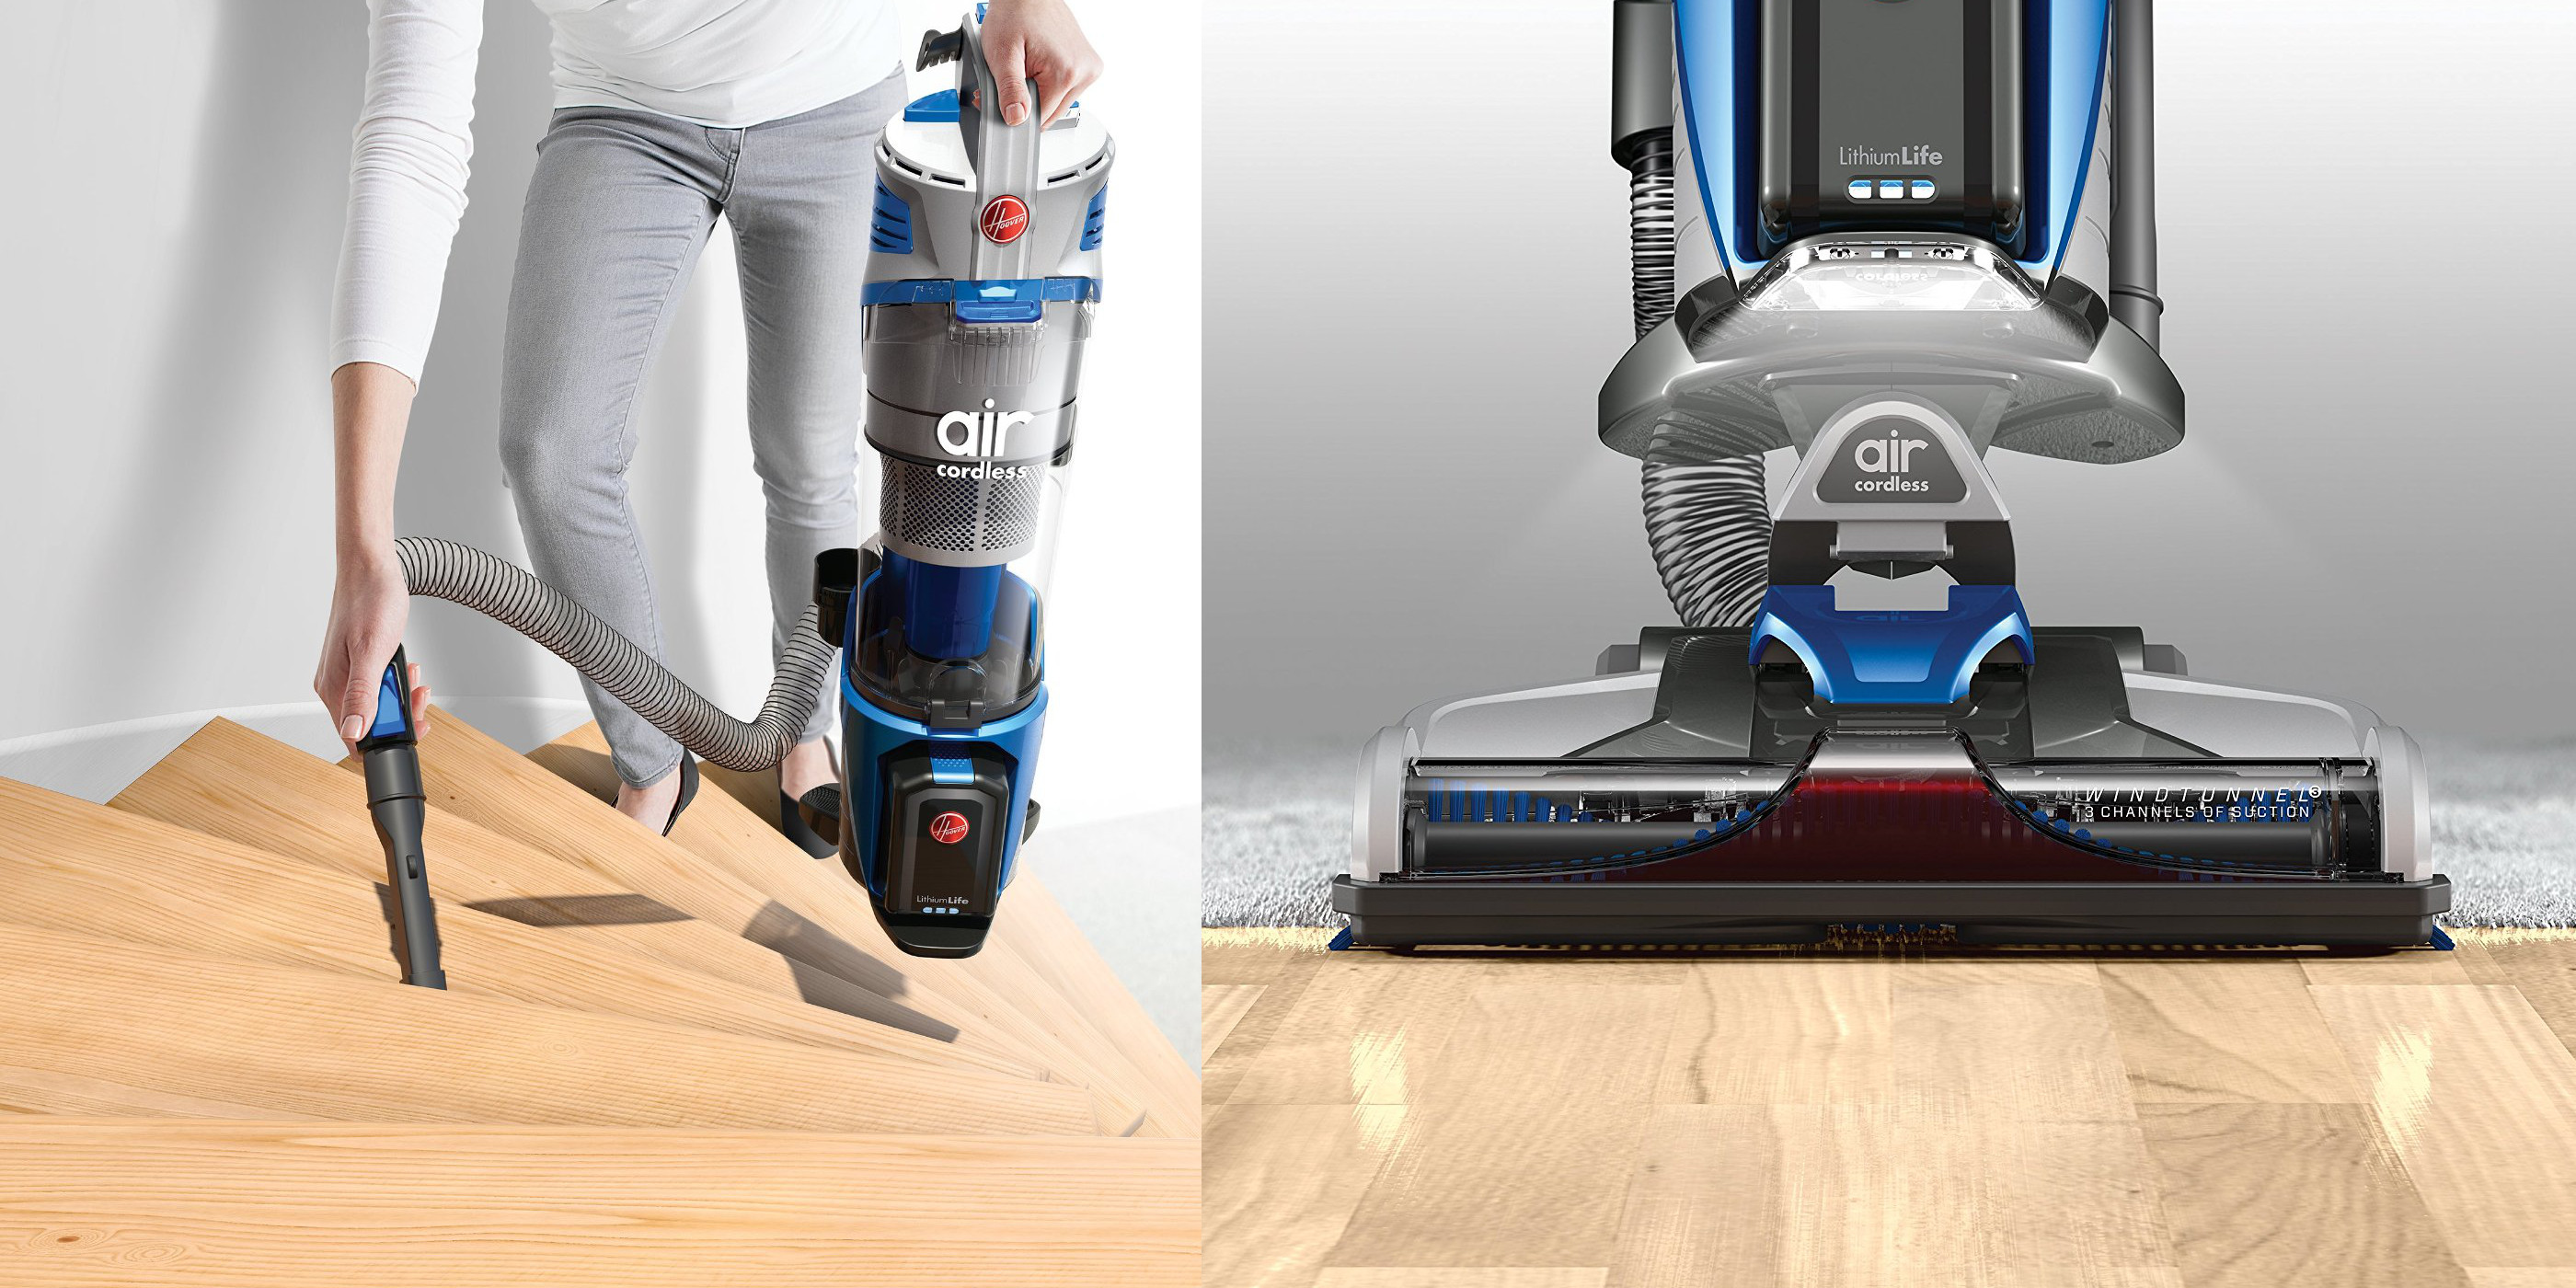 air-cordless-lift-bagless-upright-vacuum-3